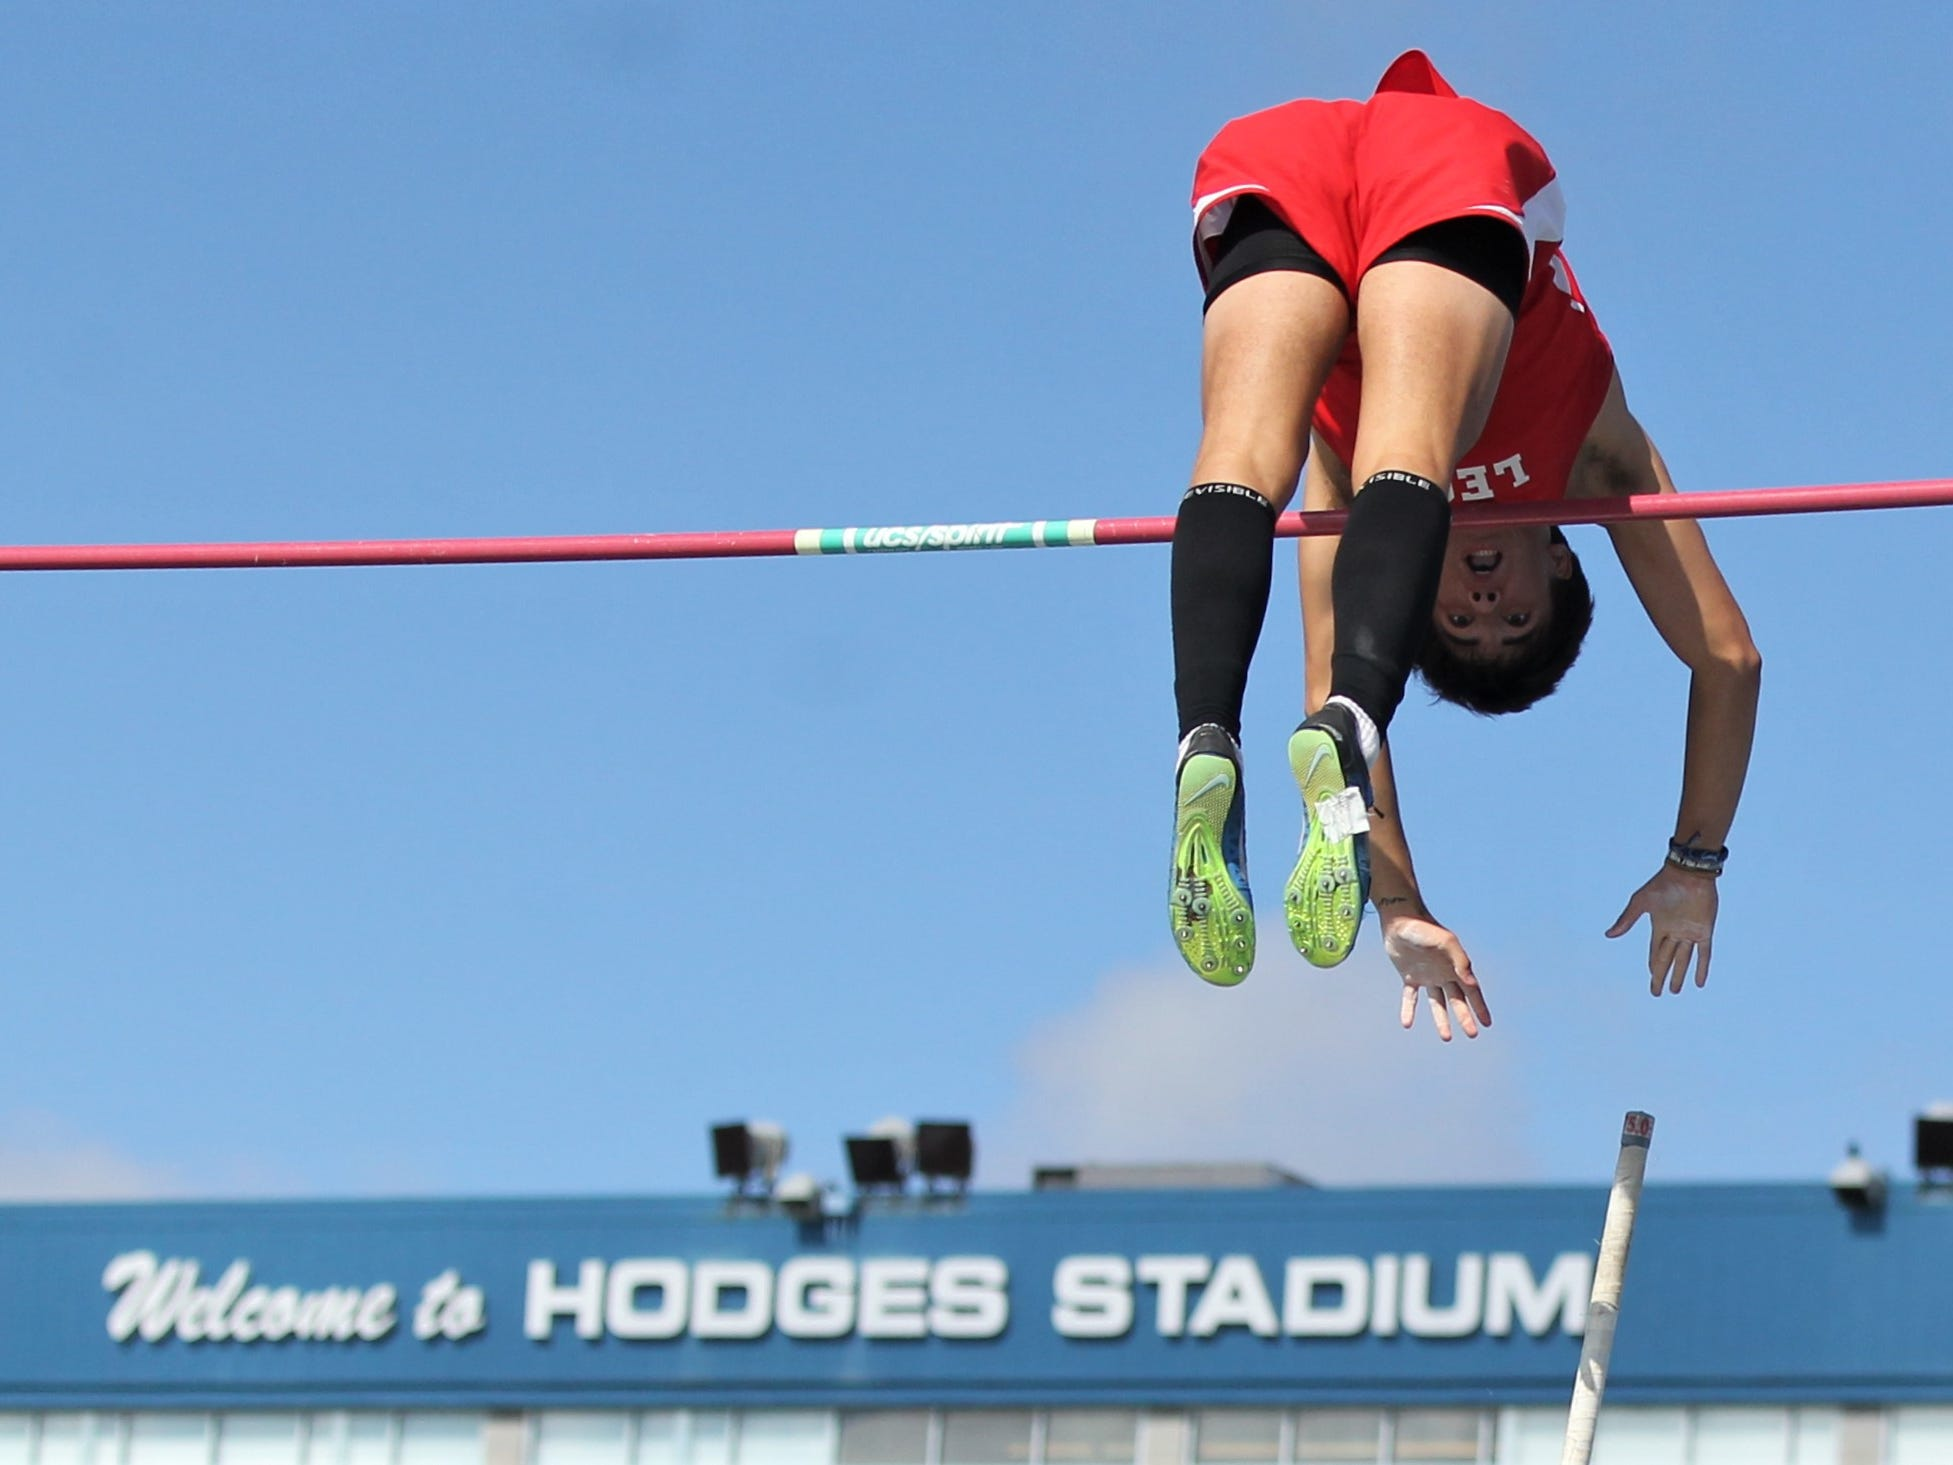 Leon senior Sebastian Campo took home a silver medal in Class 3A pole vault, reaching 15-09 to tie for the high mark of the day and set a new Leon school record during the FHSAA Track and Field State Championships at UNF's Hodges Stadium in Jacksonville on May 3 and 4, 2019.